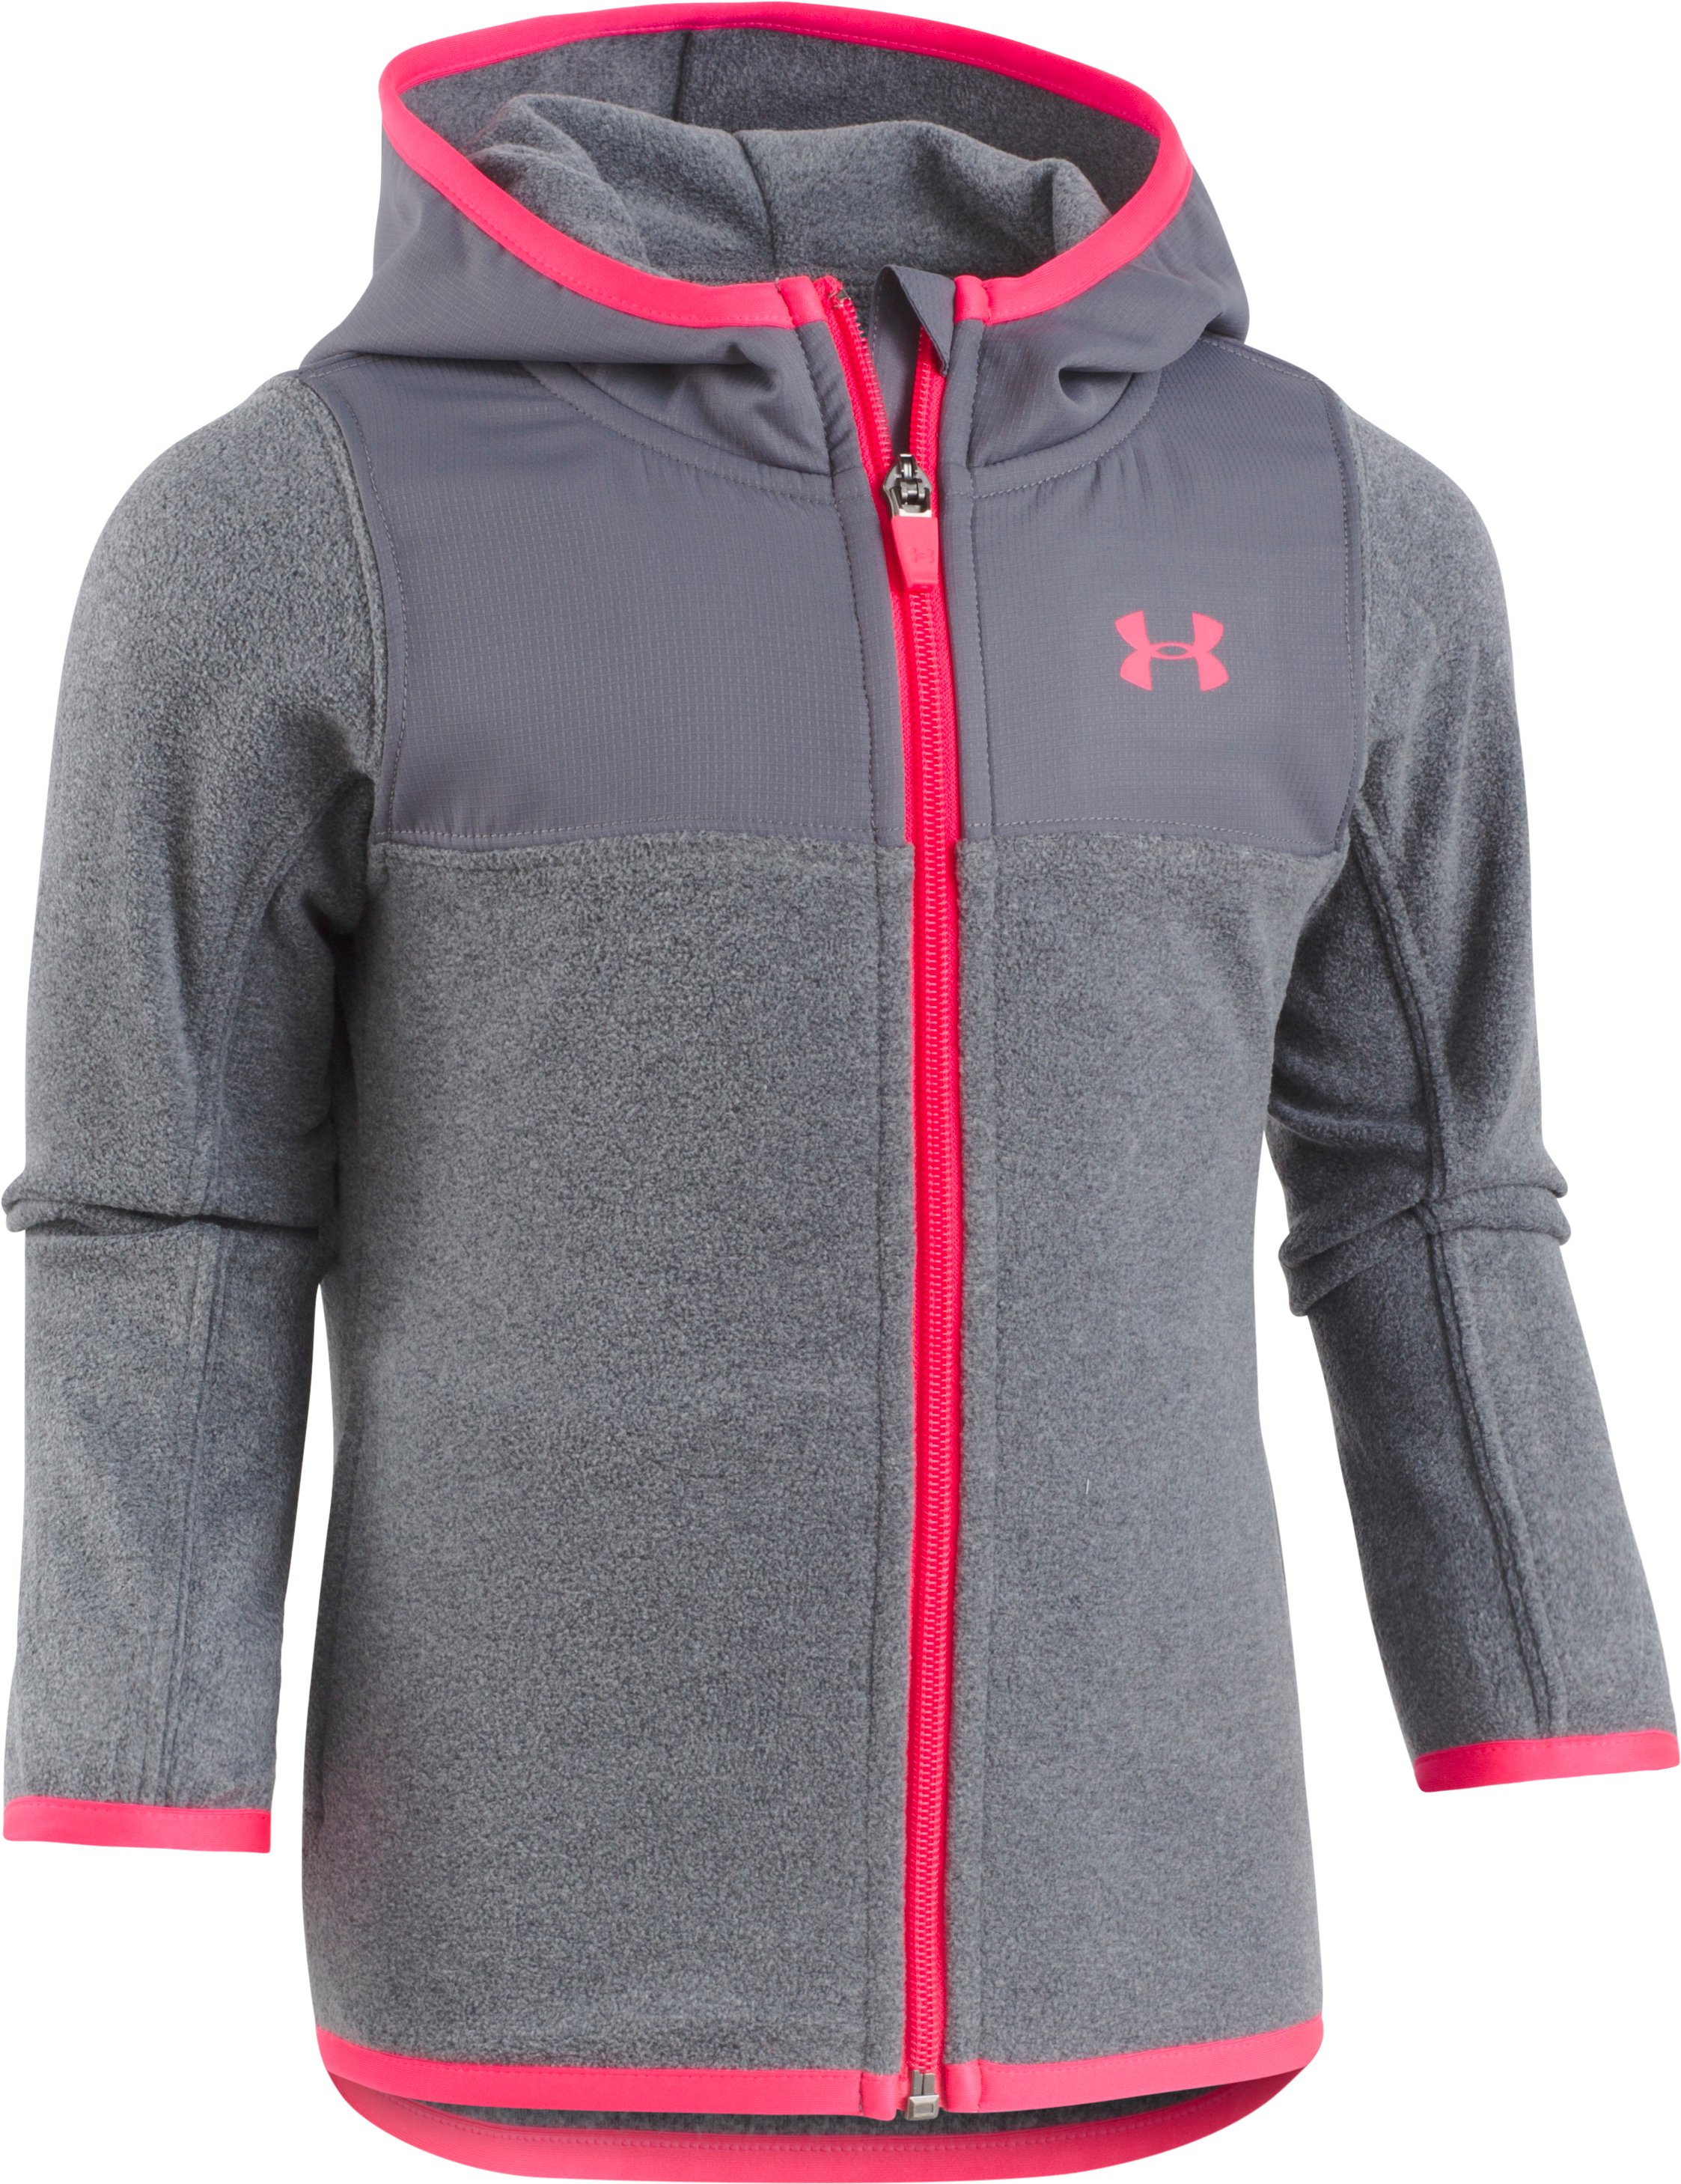 Girls' Toddler UA Hundo Full Zip Hoodie, Graphite